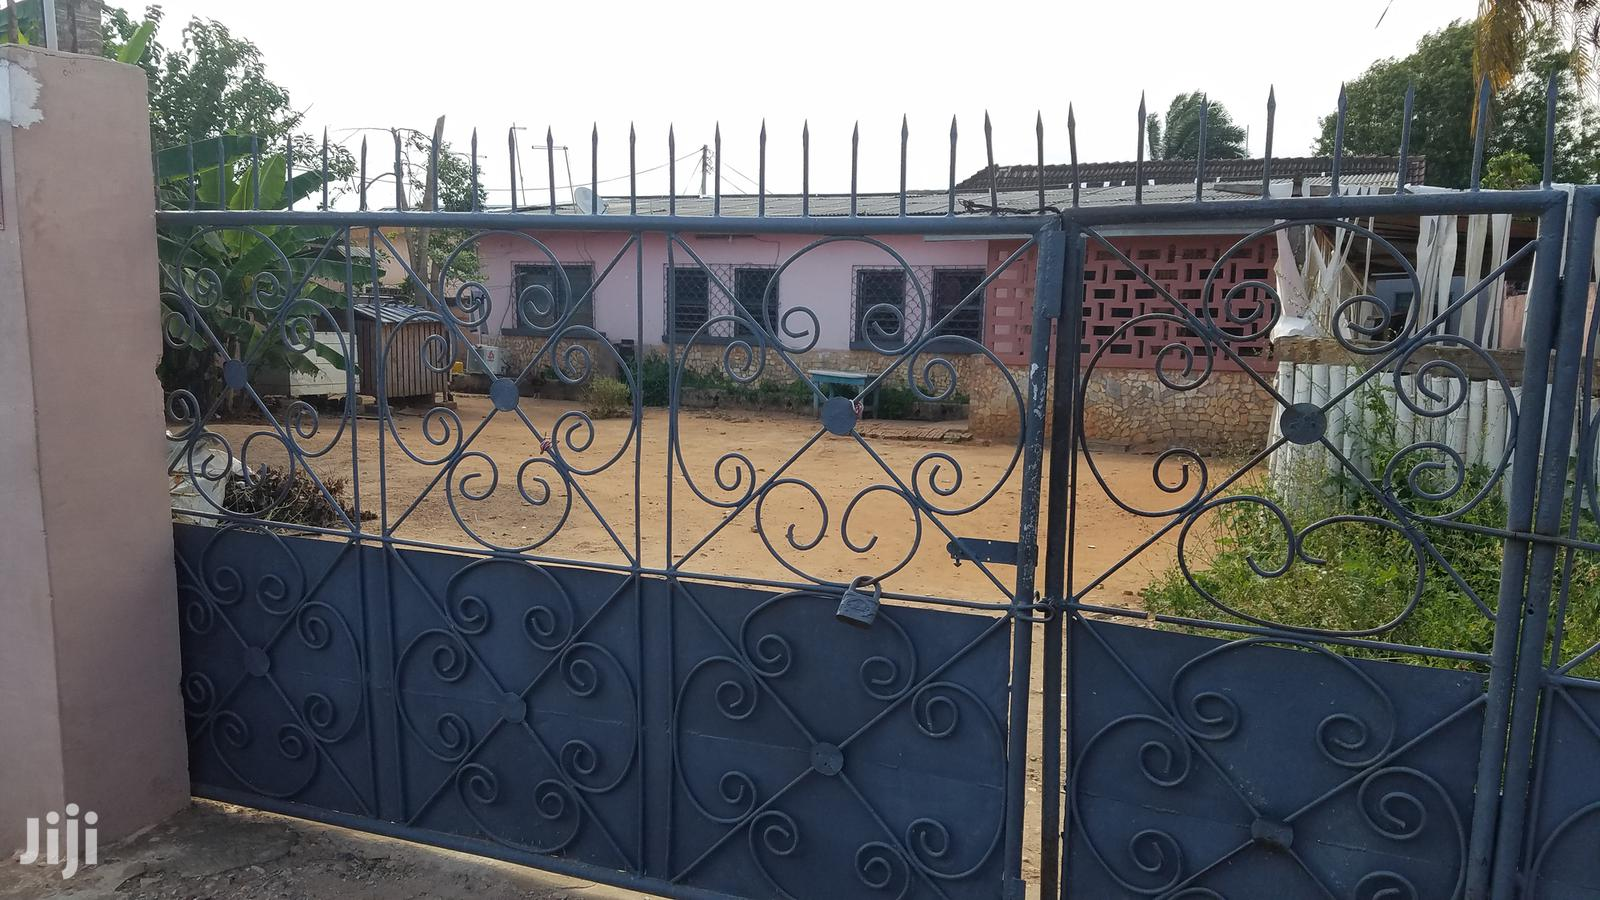 FOR LEASE 1 Plot Of (80' X 110') Fenced Land At ABELEMKPE, ACCRA | Land & Plots for Rent for sale in Abelemkpe, Greater Accra, Ghana